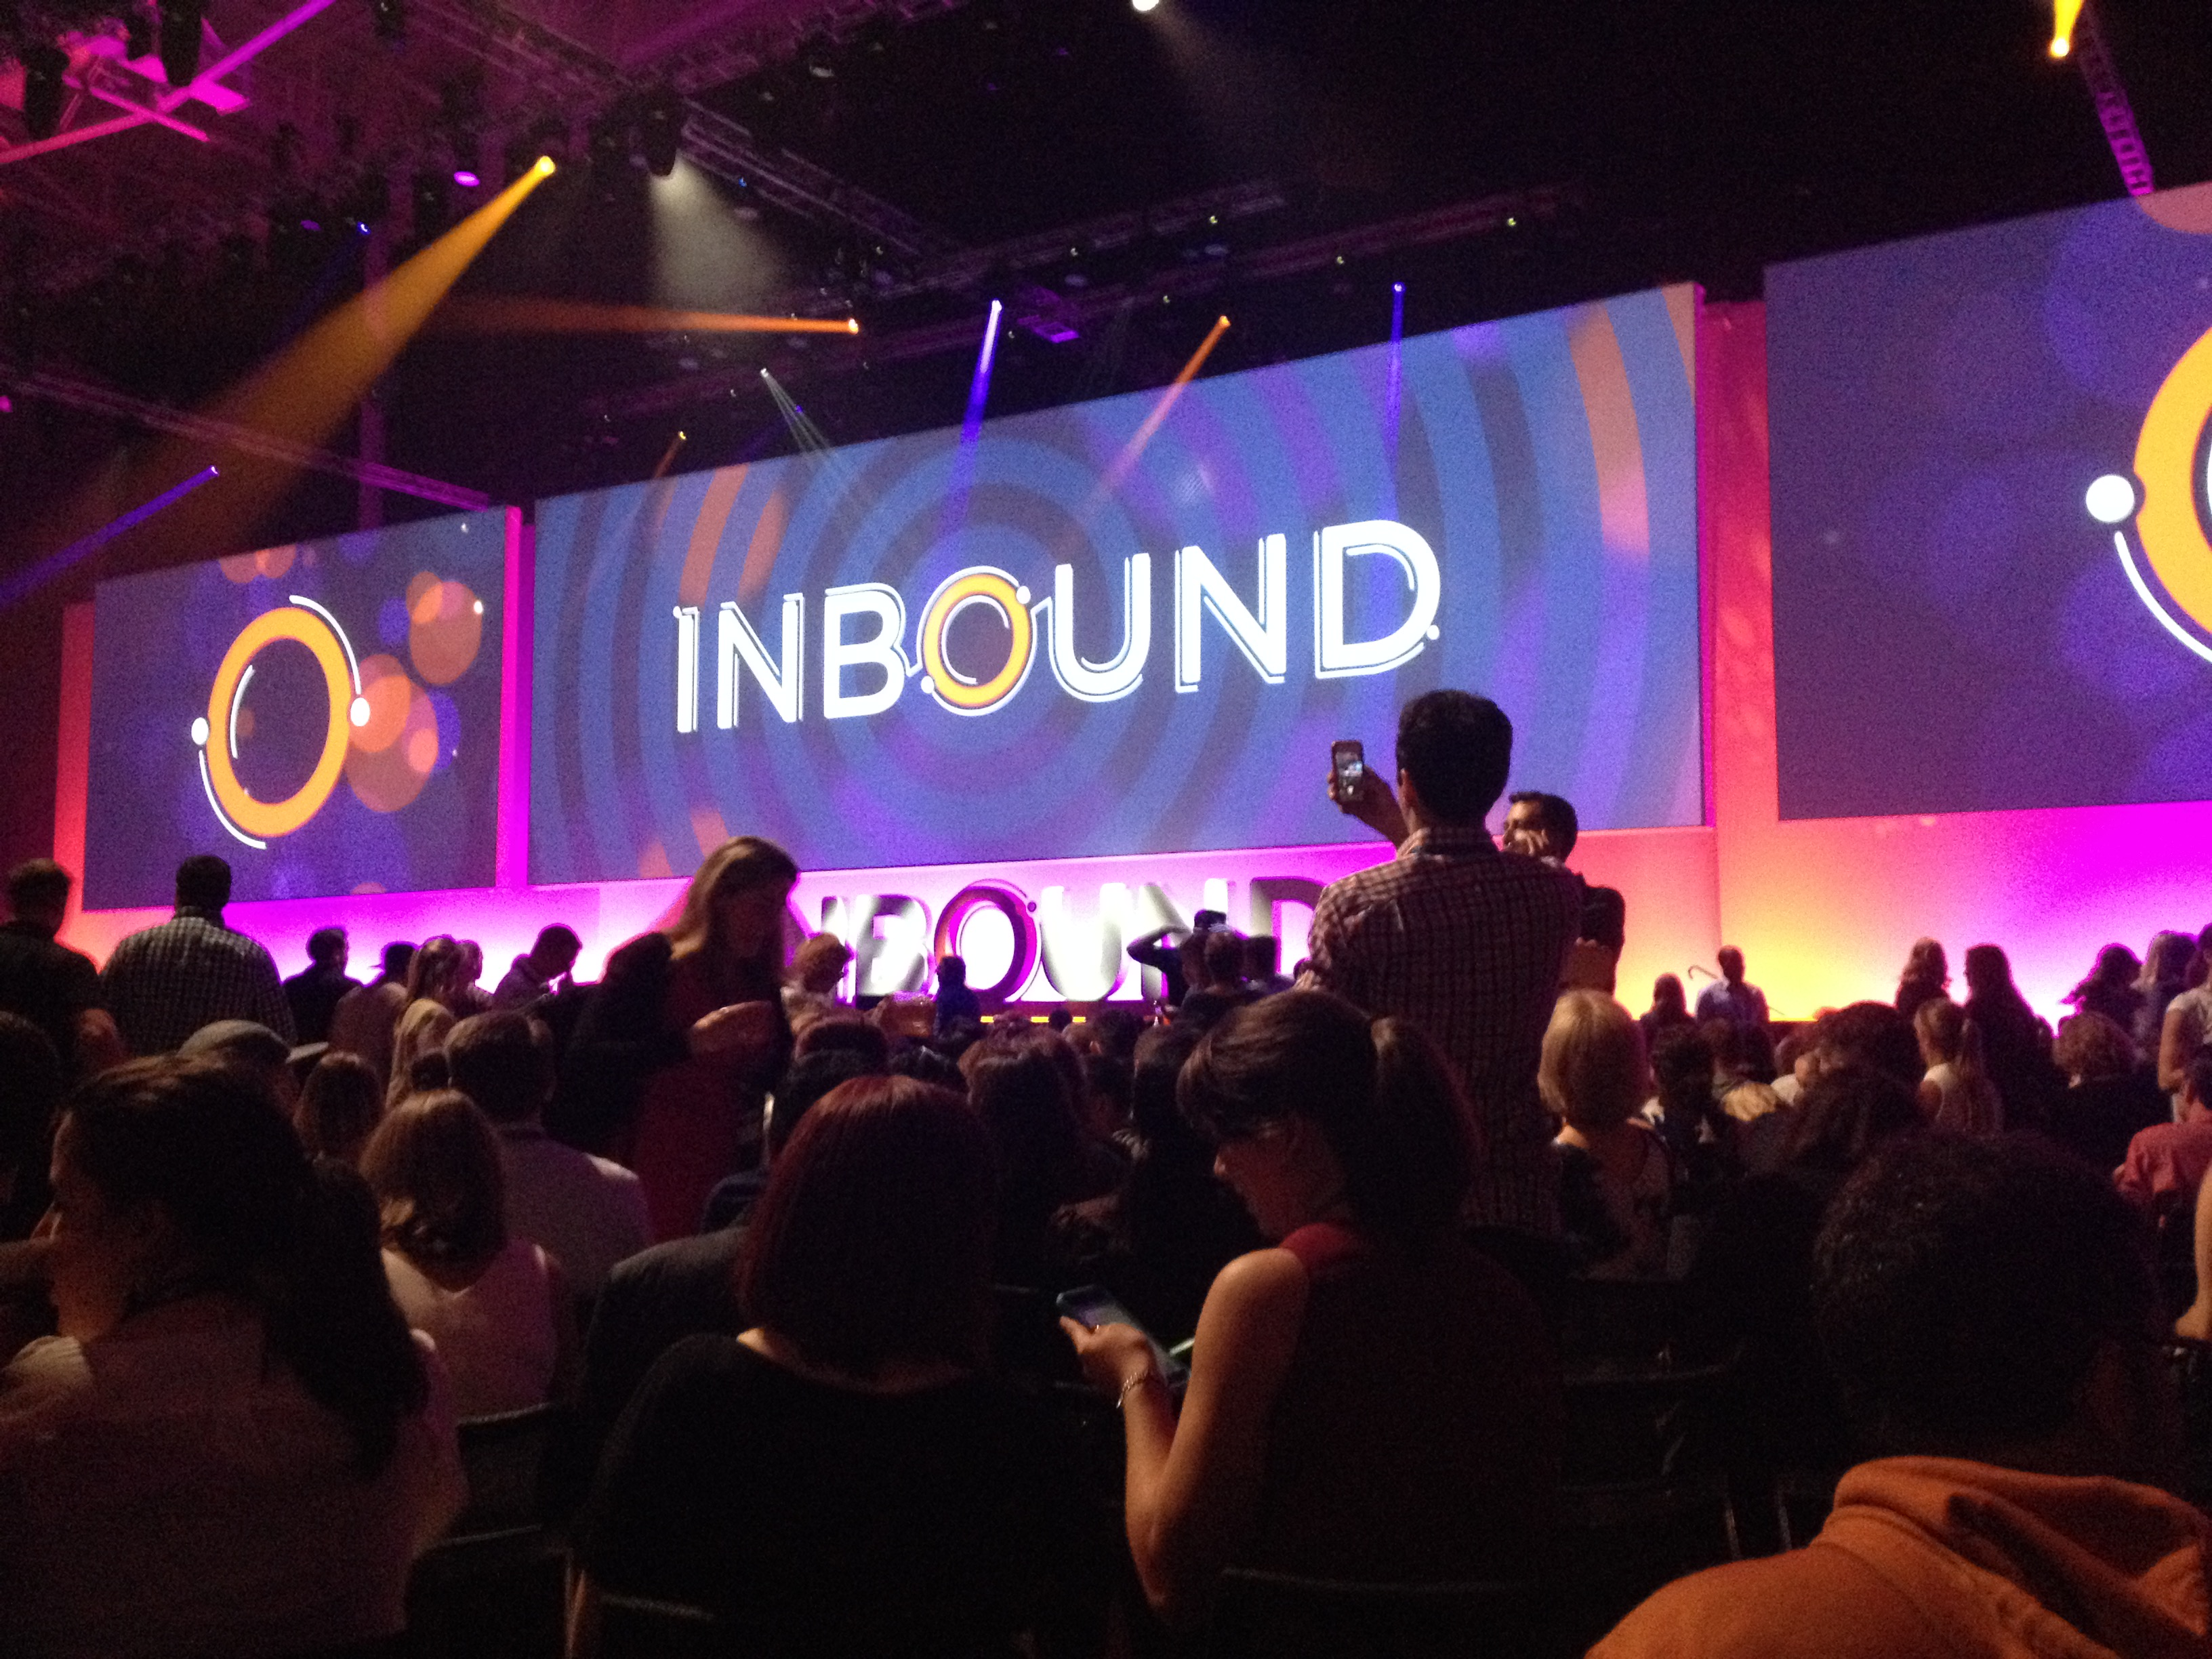 Why-you-should-attend-Inbound-2016.jpg